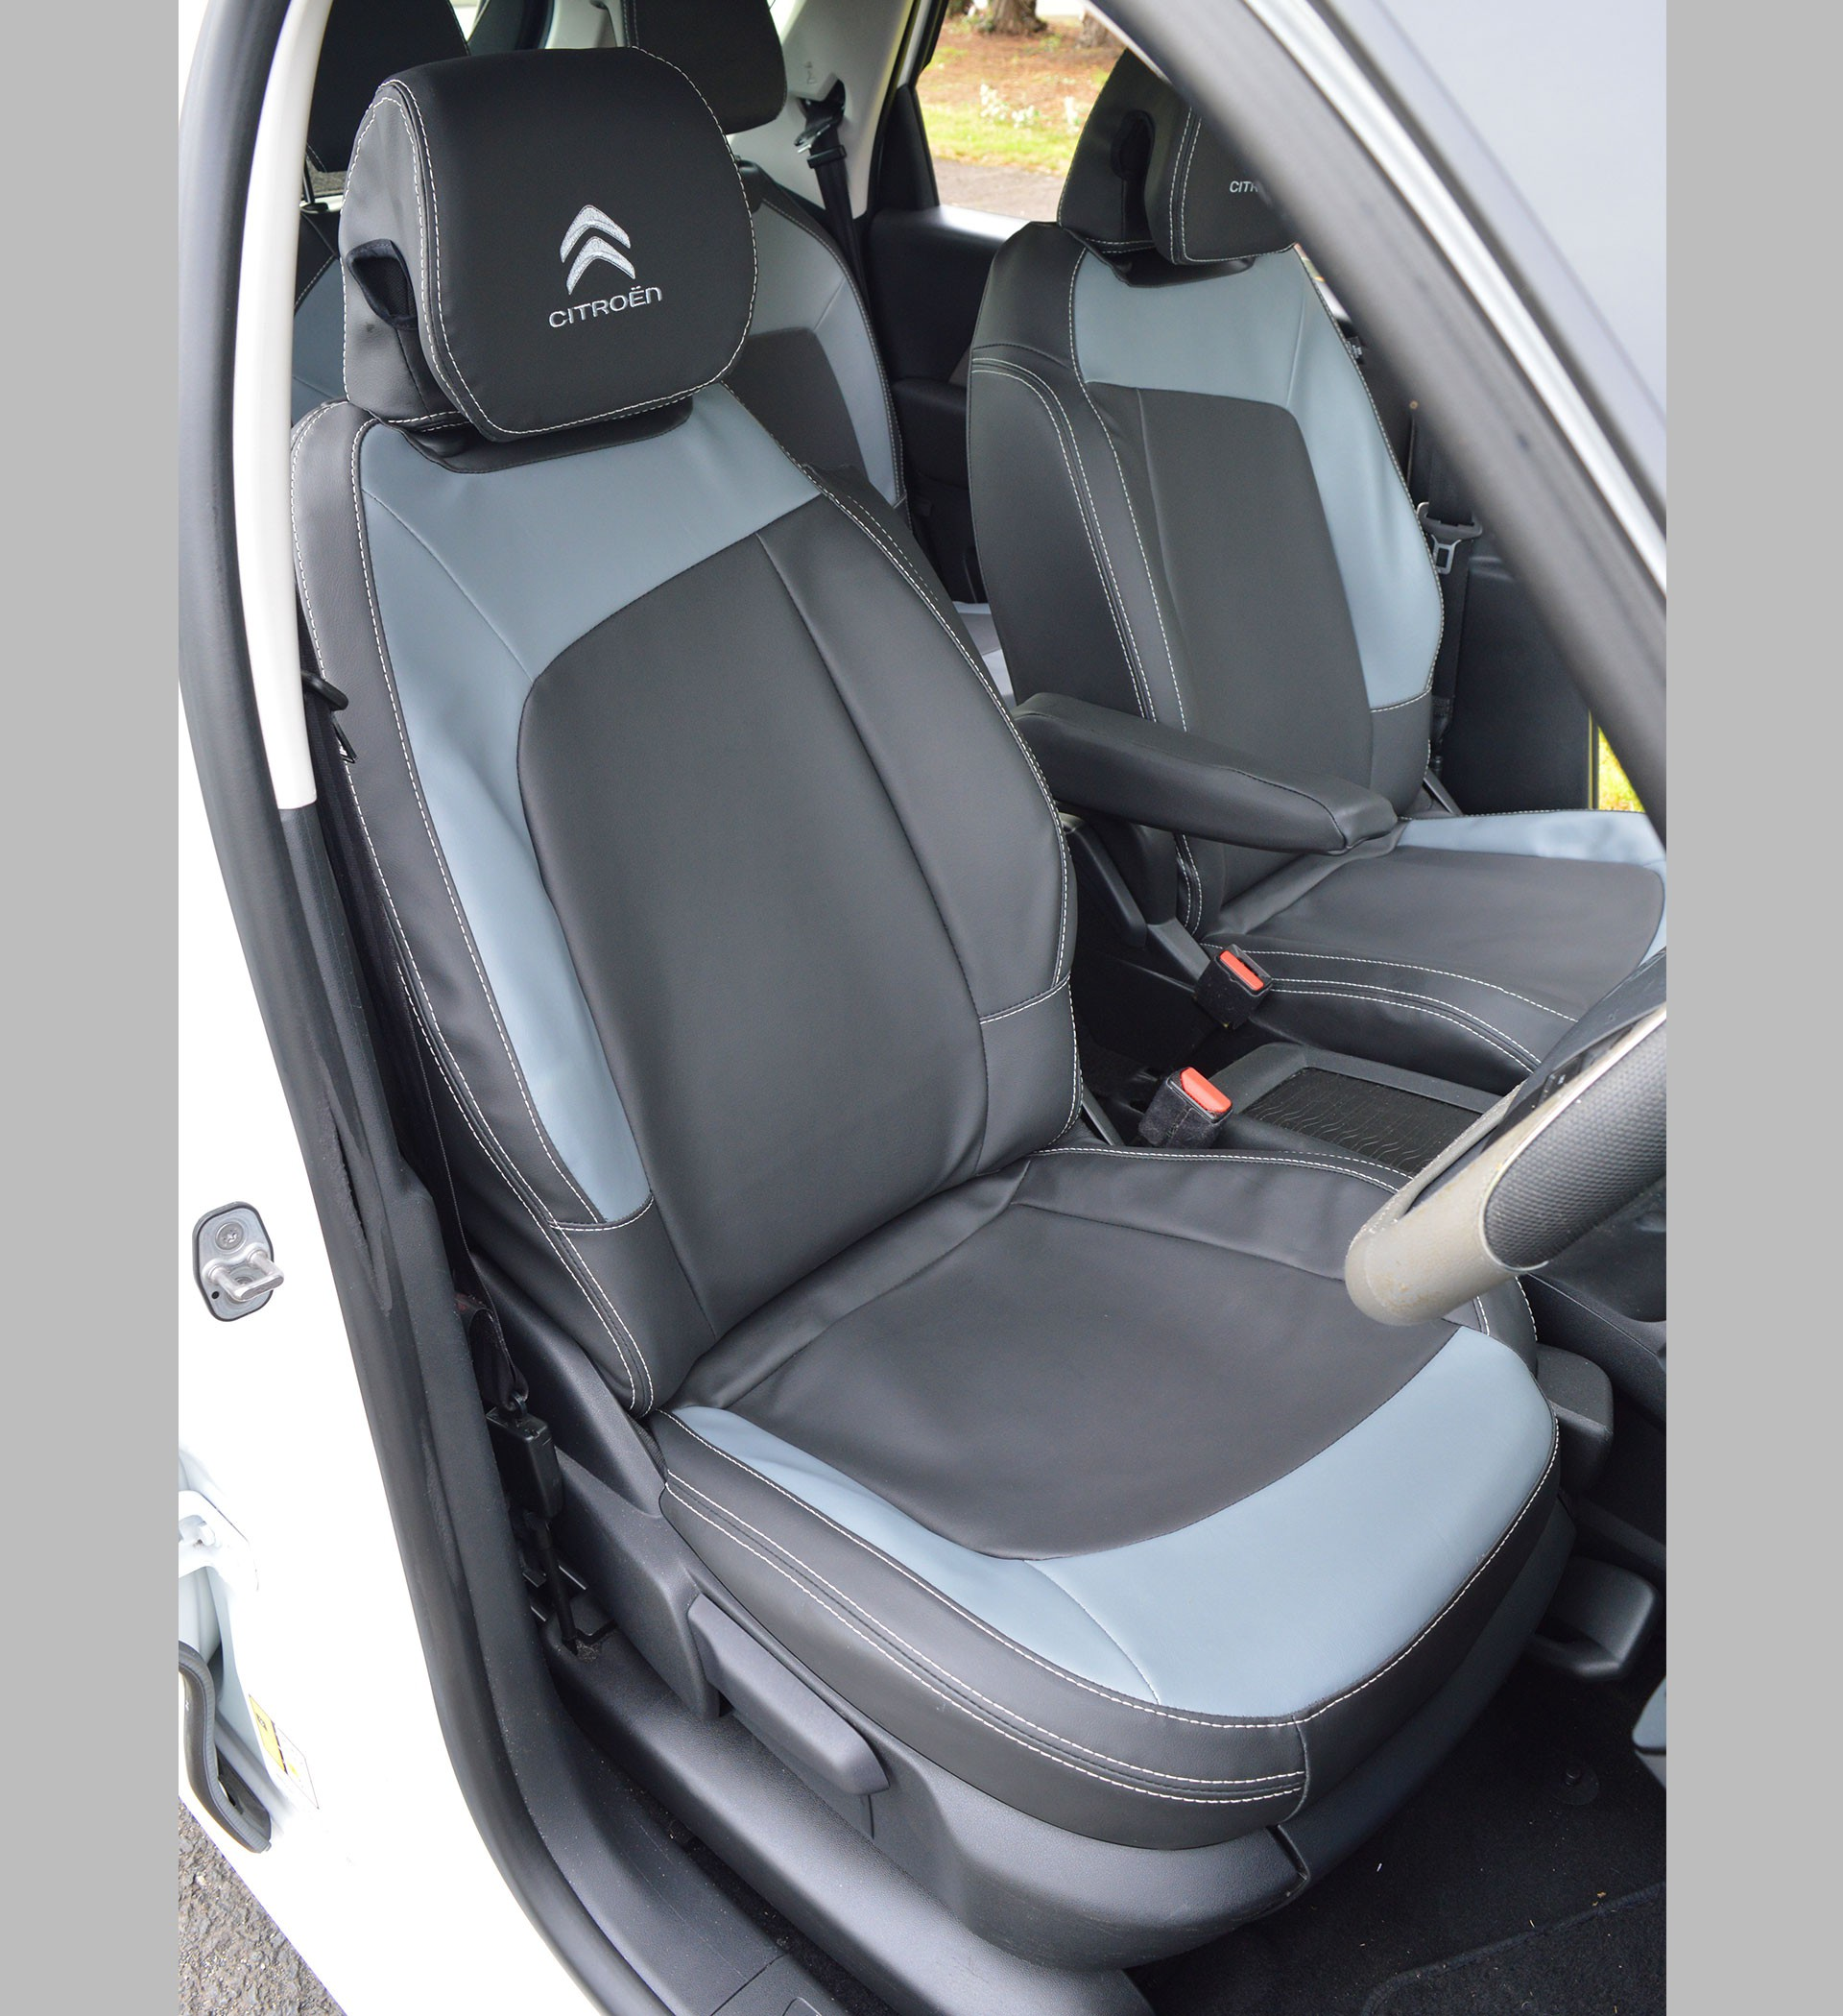 citroen c4 picasso tailored charcoal forli grey leatherette seat covers for 5 seats car seat. Black Bedroom Furniture Sets. Home Design Ideas